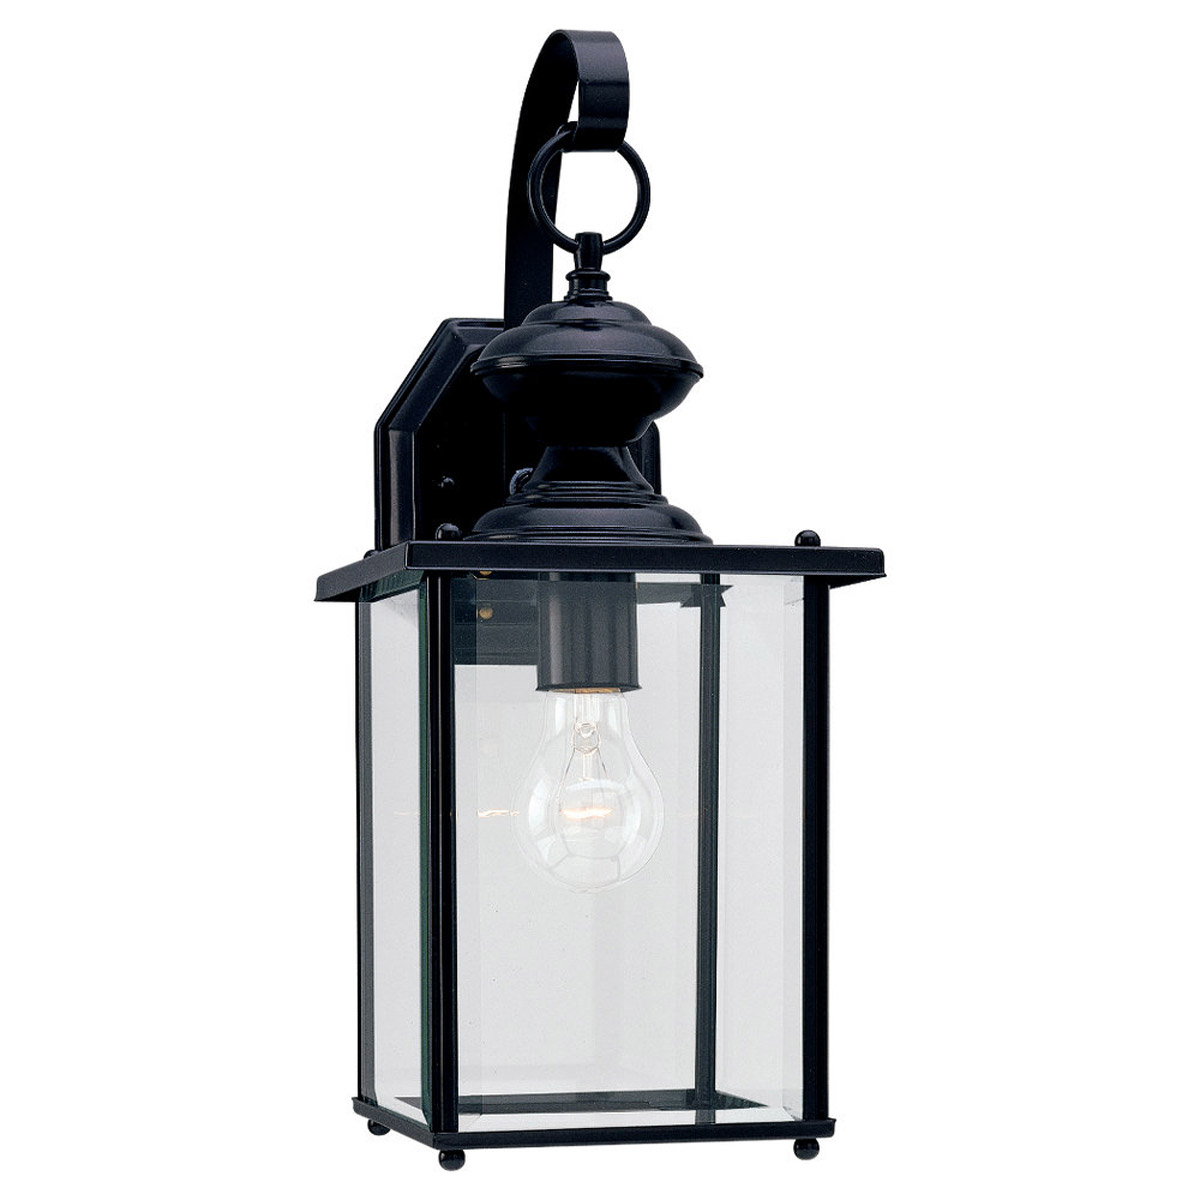 Sea Gull Lighting Jamestowne 1 Light Outdoor Wall Lantern in Black 8458-12